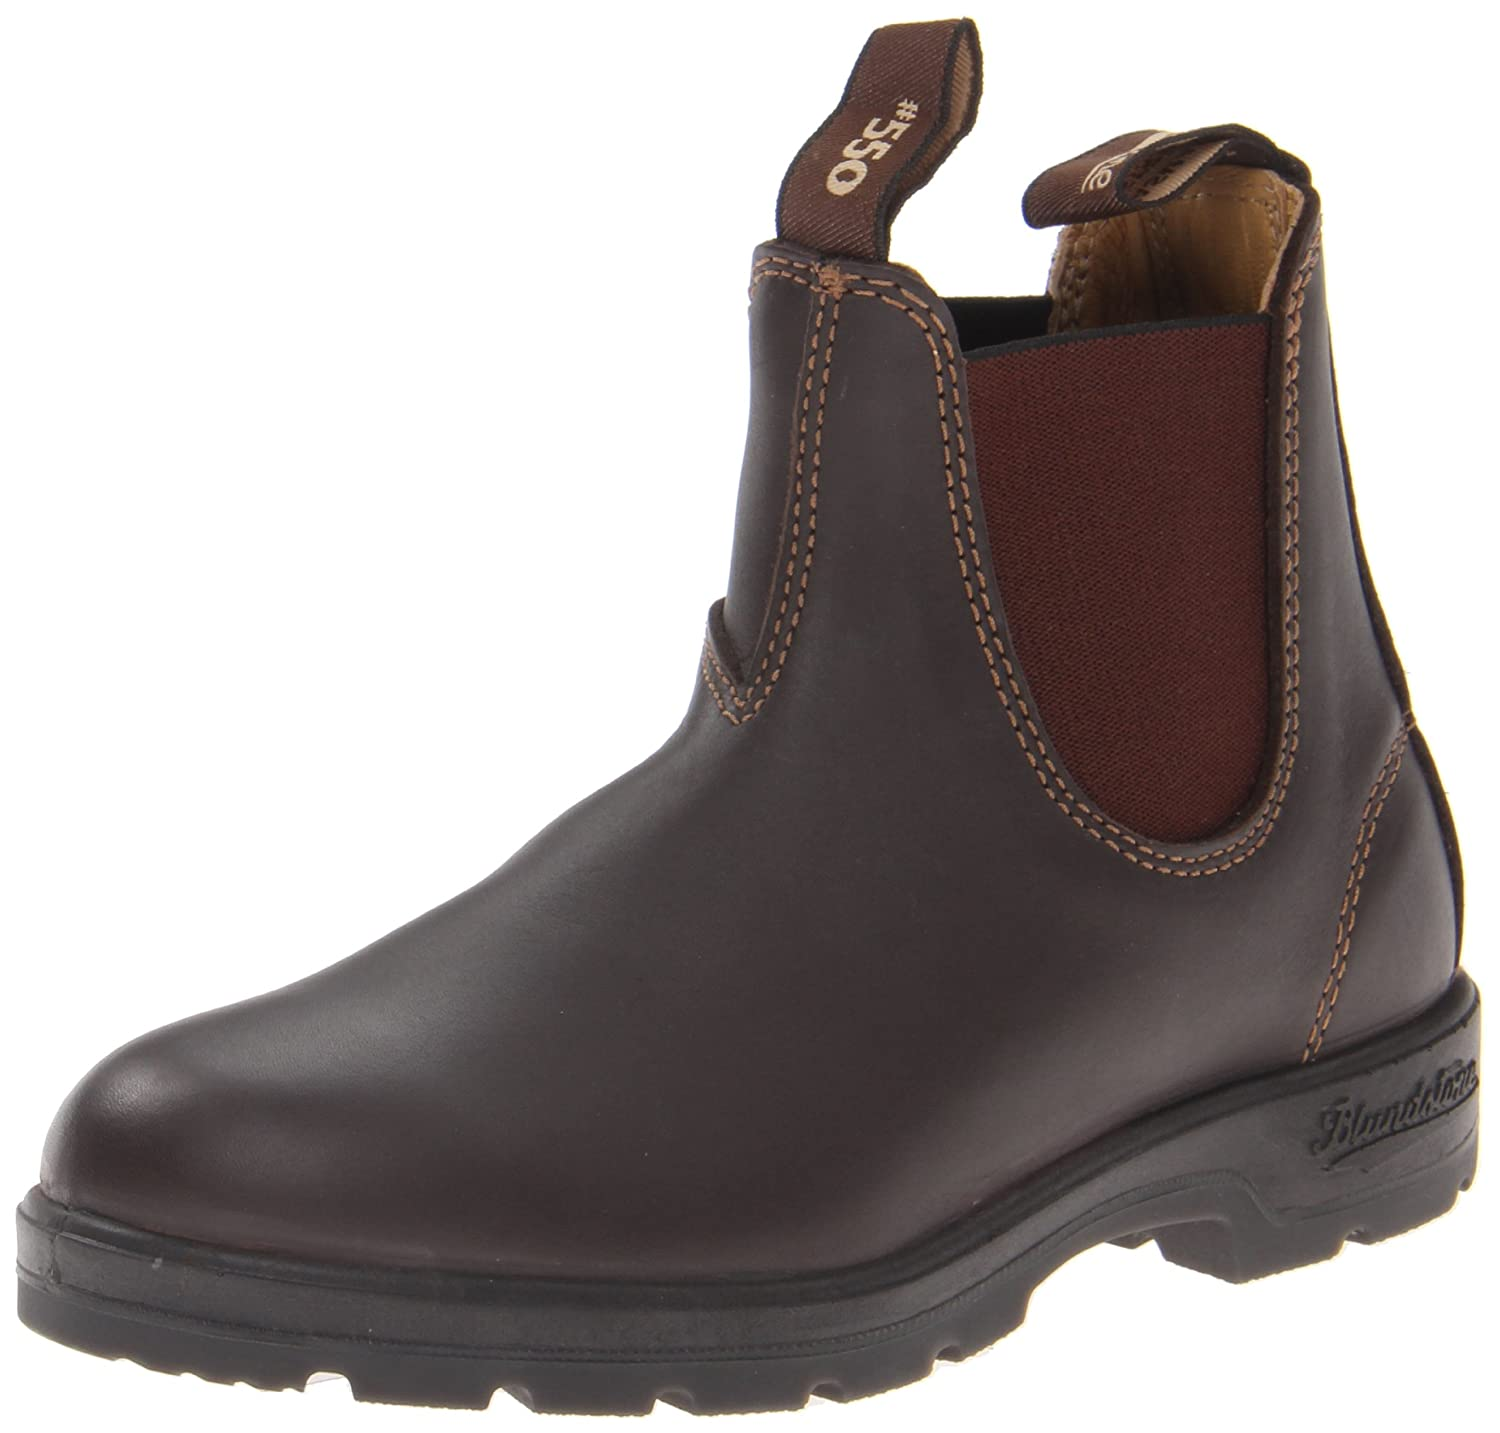 Blundstone Unisex Super 550 Series Boot B000Y096AG 7 UK/8 M US/10 B(M) US|Walnut